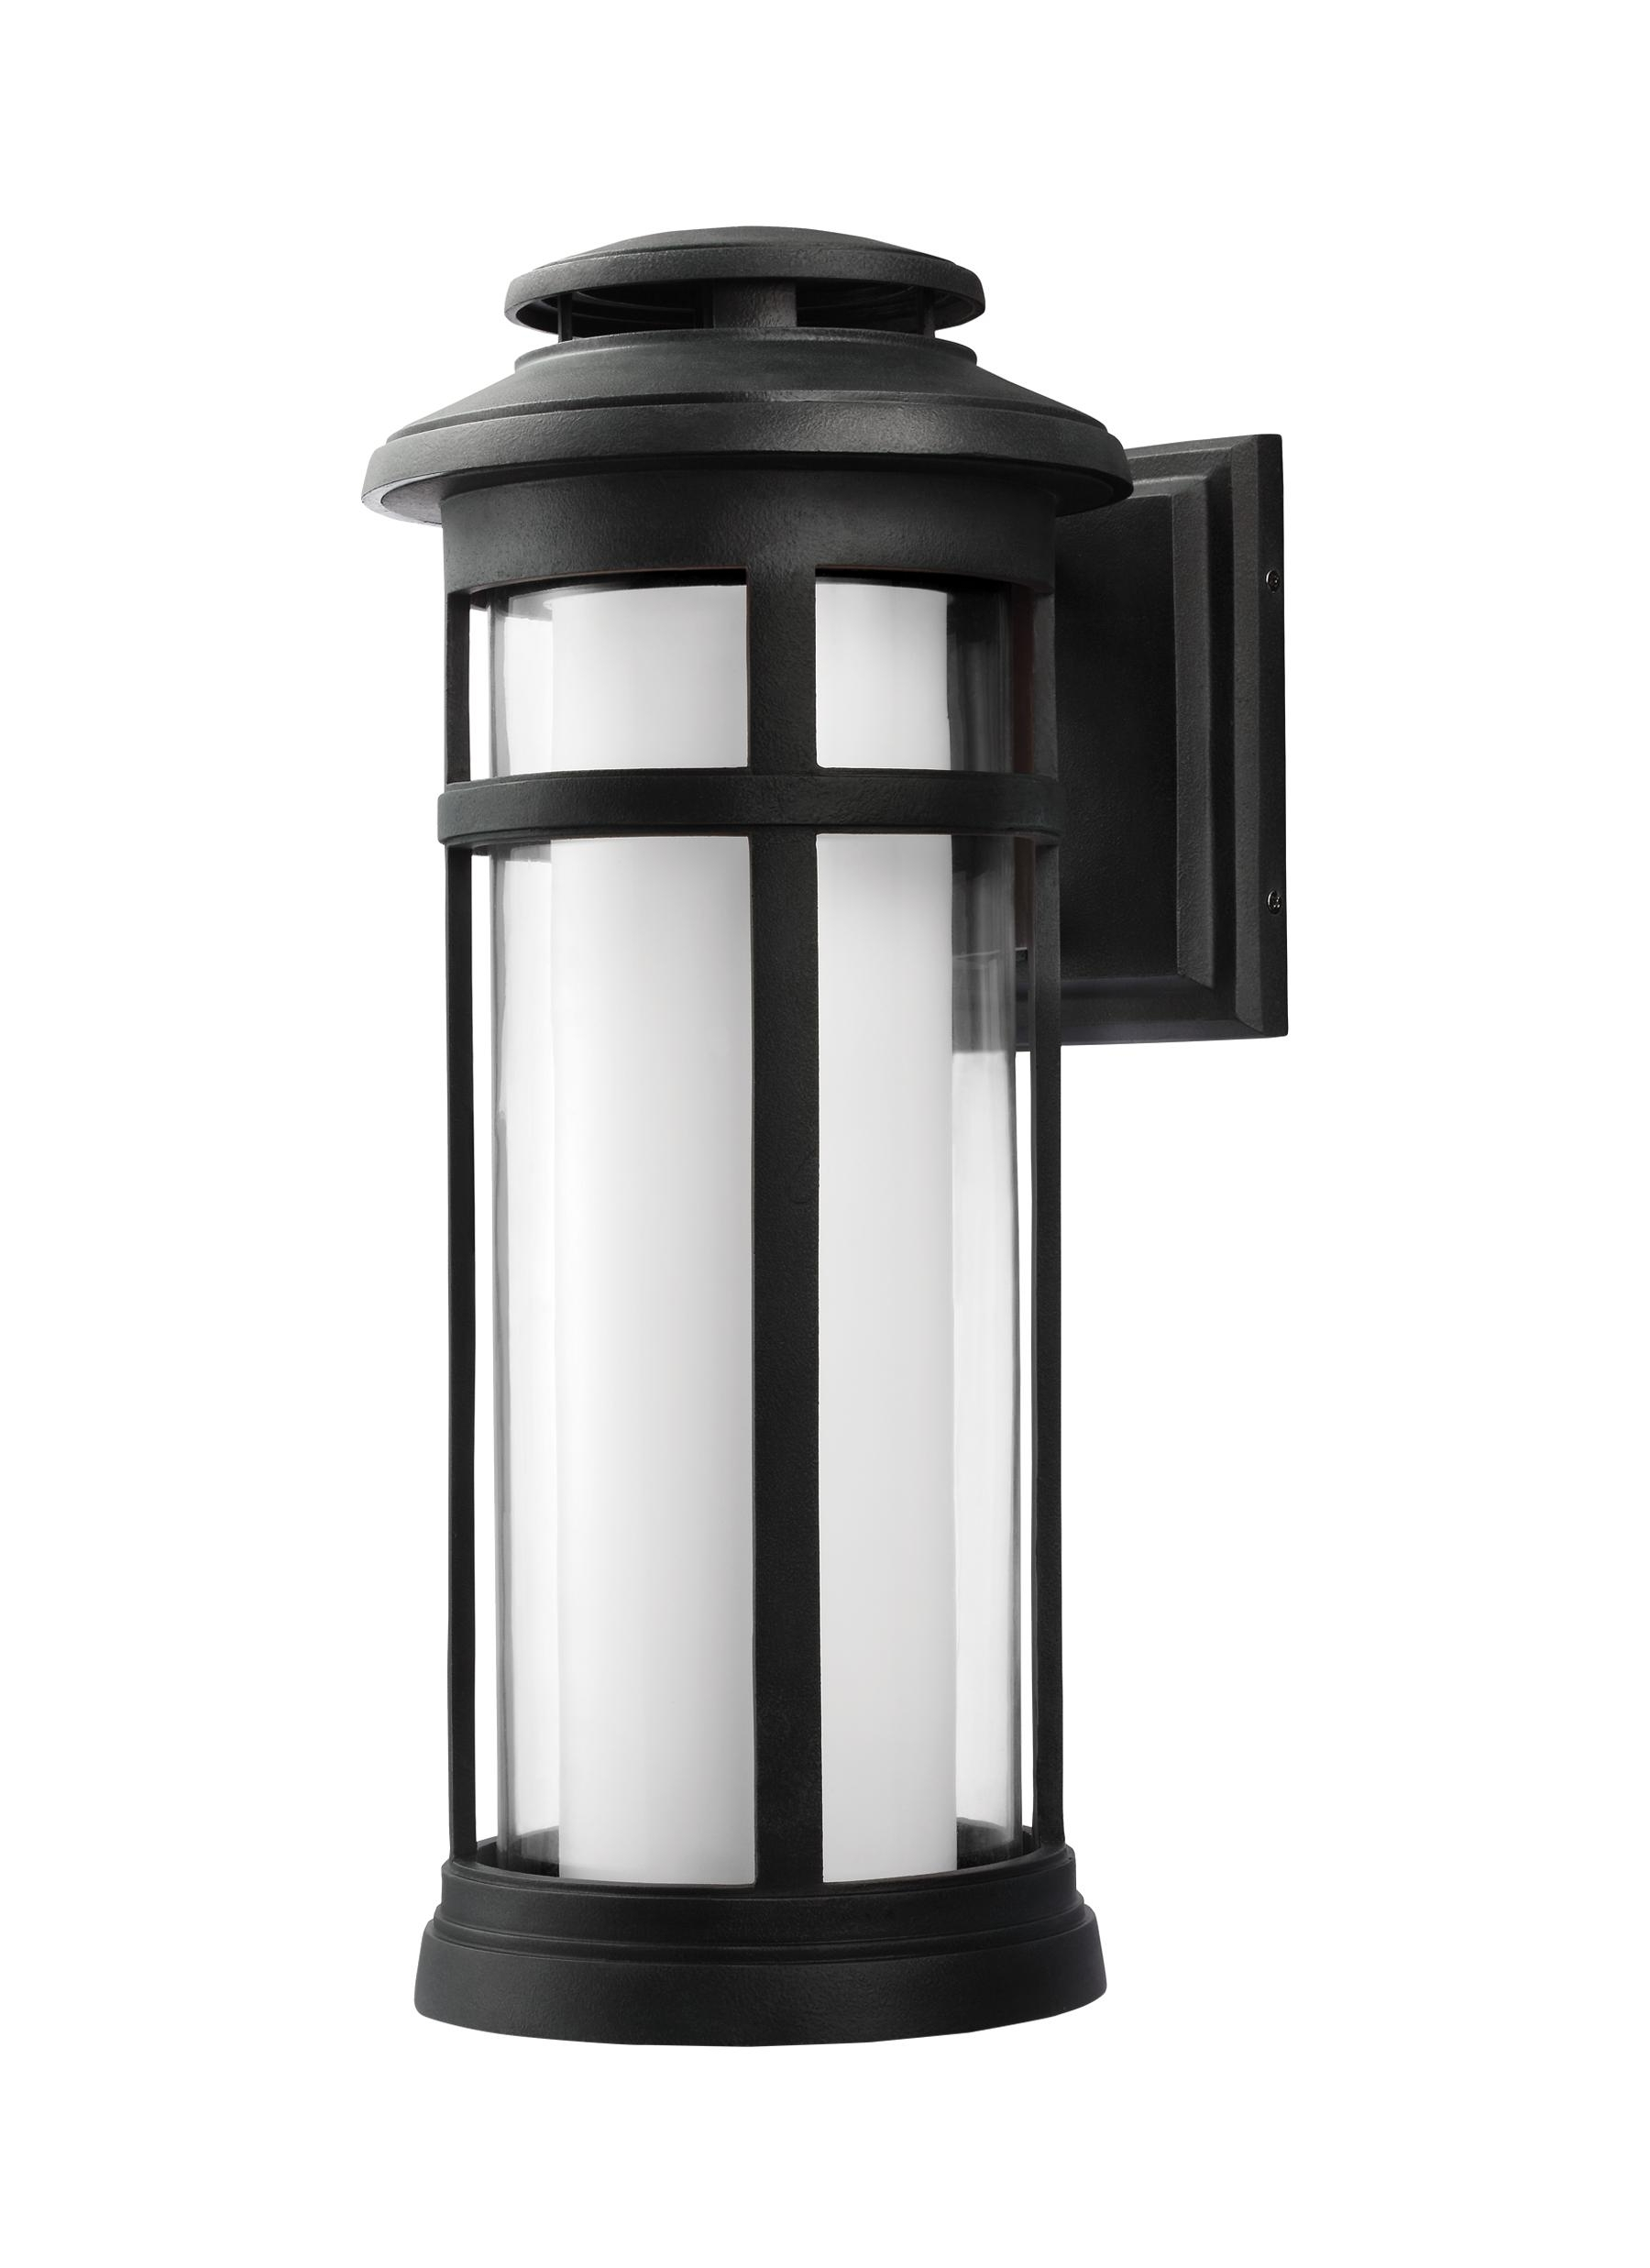 Well Known Zinc Outdoor Lanterns With Ol12502Dwz Led,1 – Light Outdoor Wall Lantern,dark Weathered Zinc (View 12 of 20)